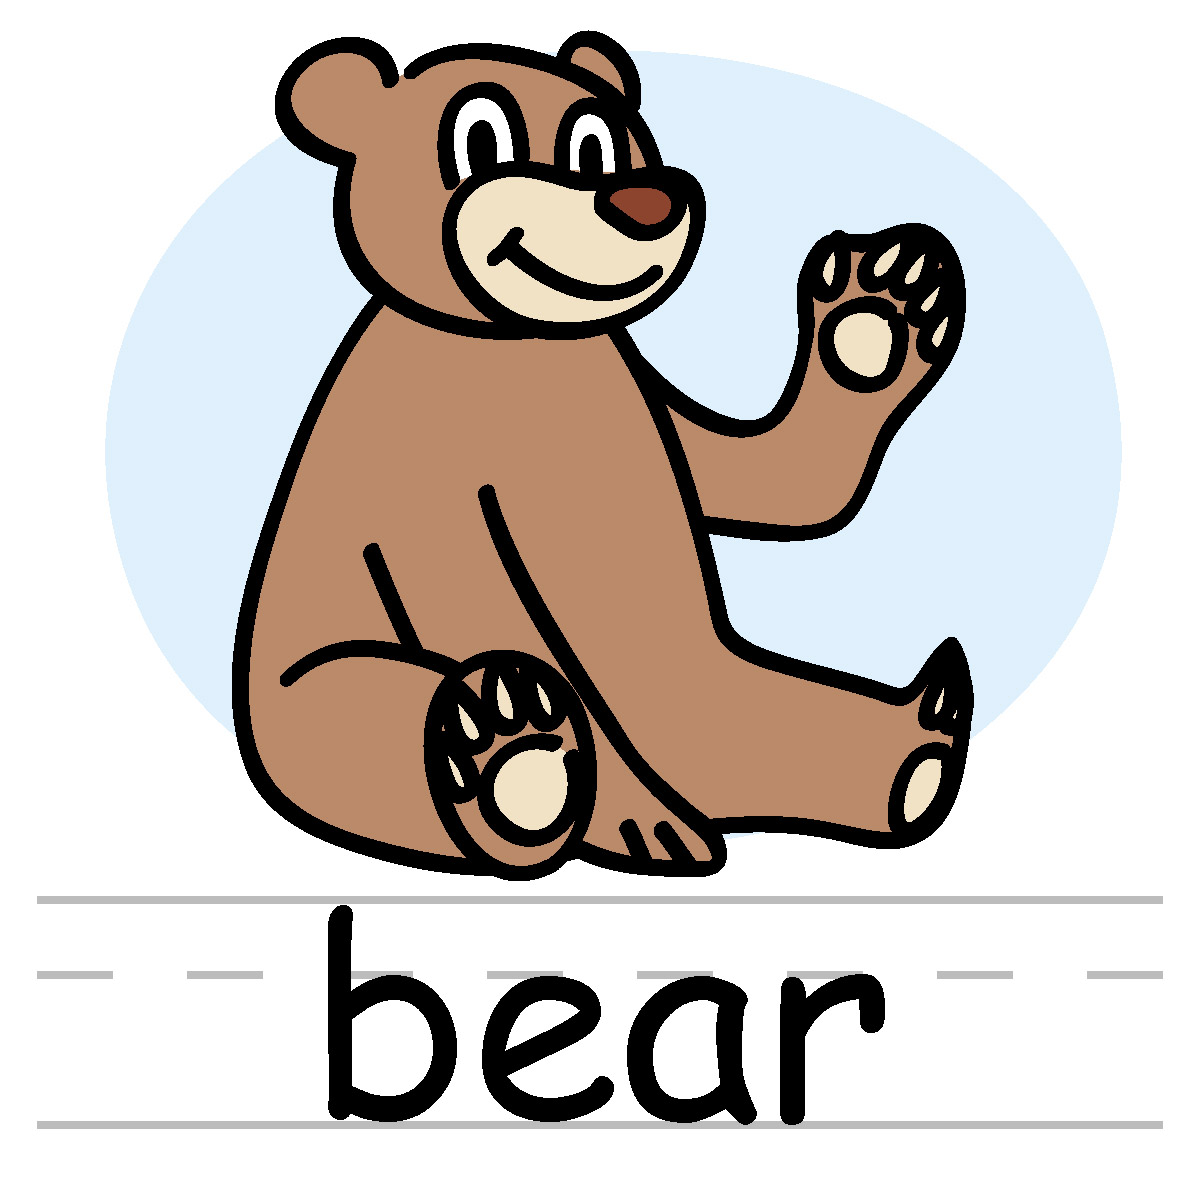 Letter b clipart bear vector freeuse Letter b clipart bear - ClipartFest vector freeuse